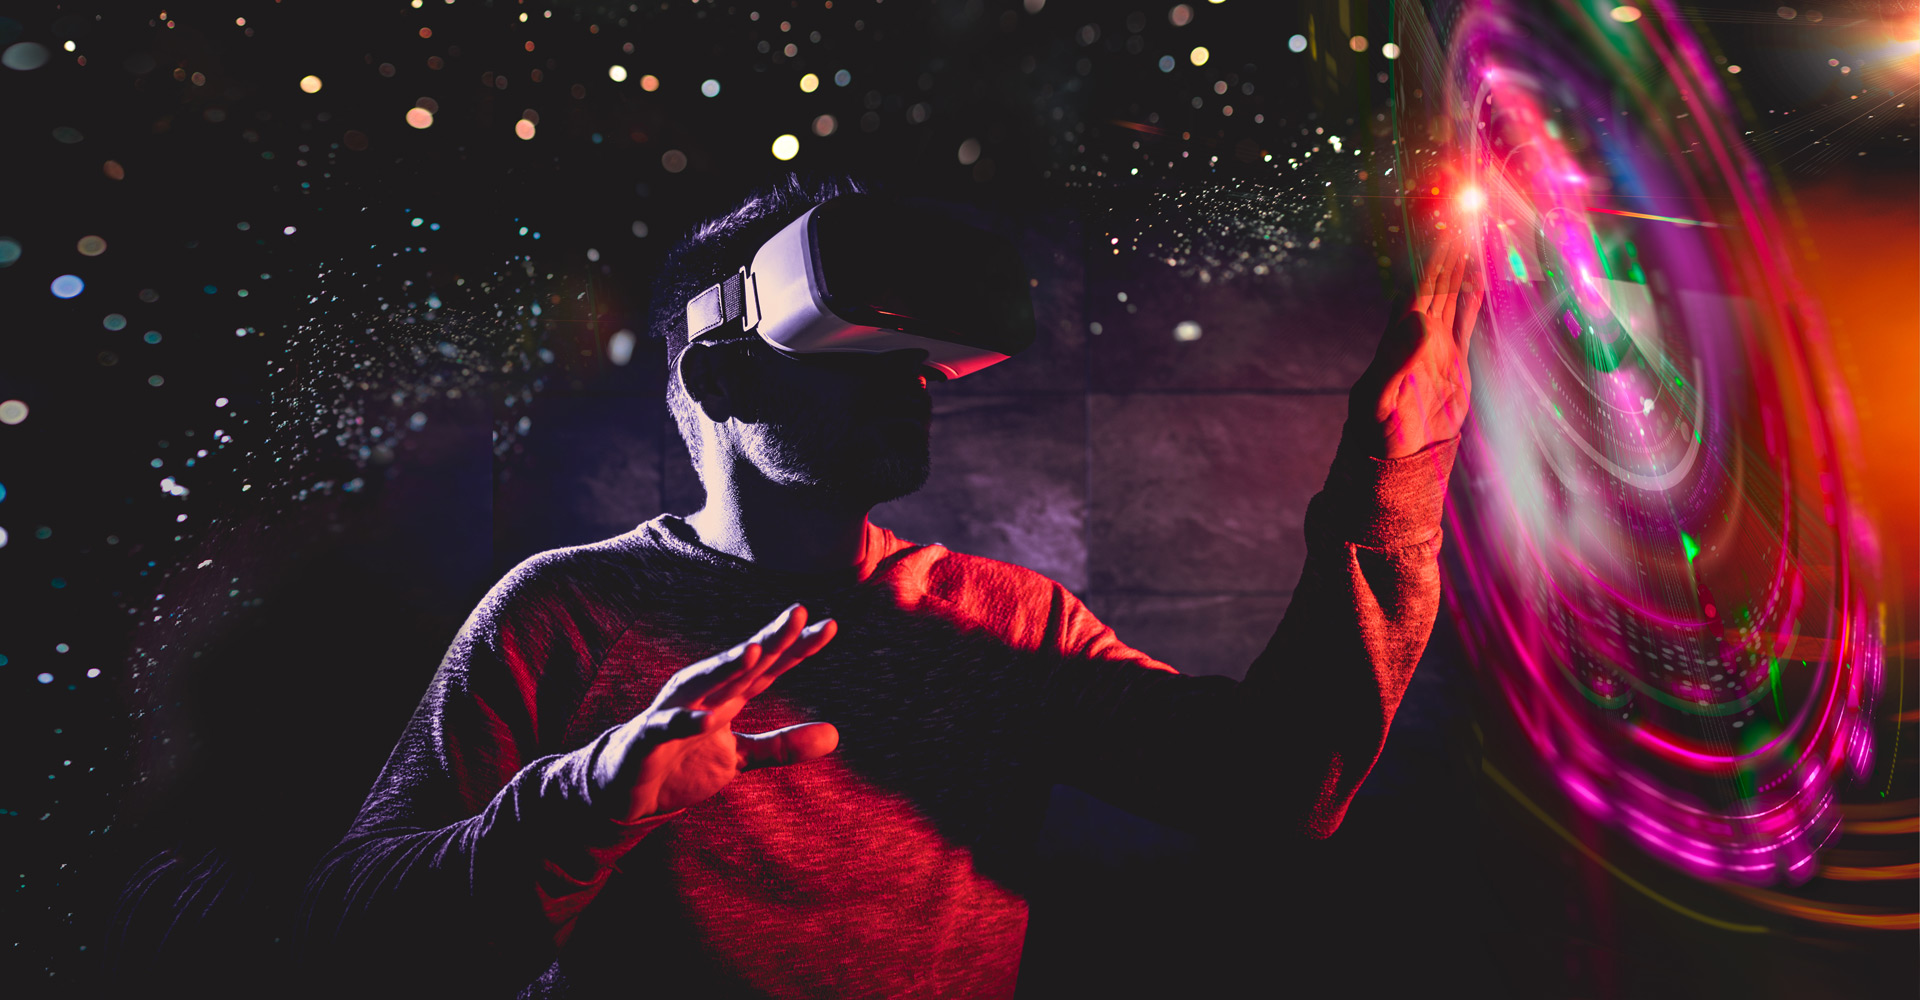 Facebook Builds Metaverse With XR Programs   Avast